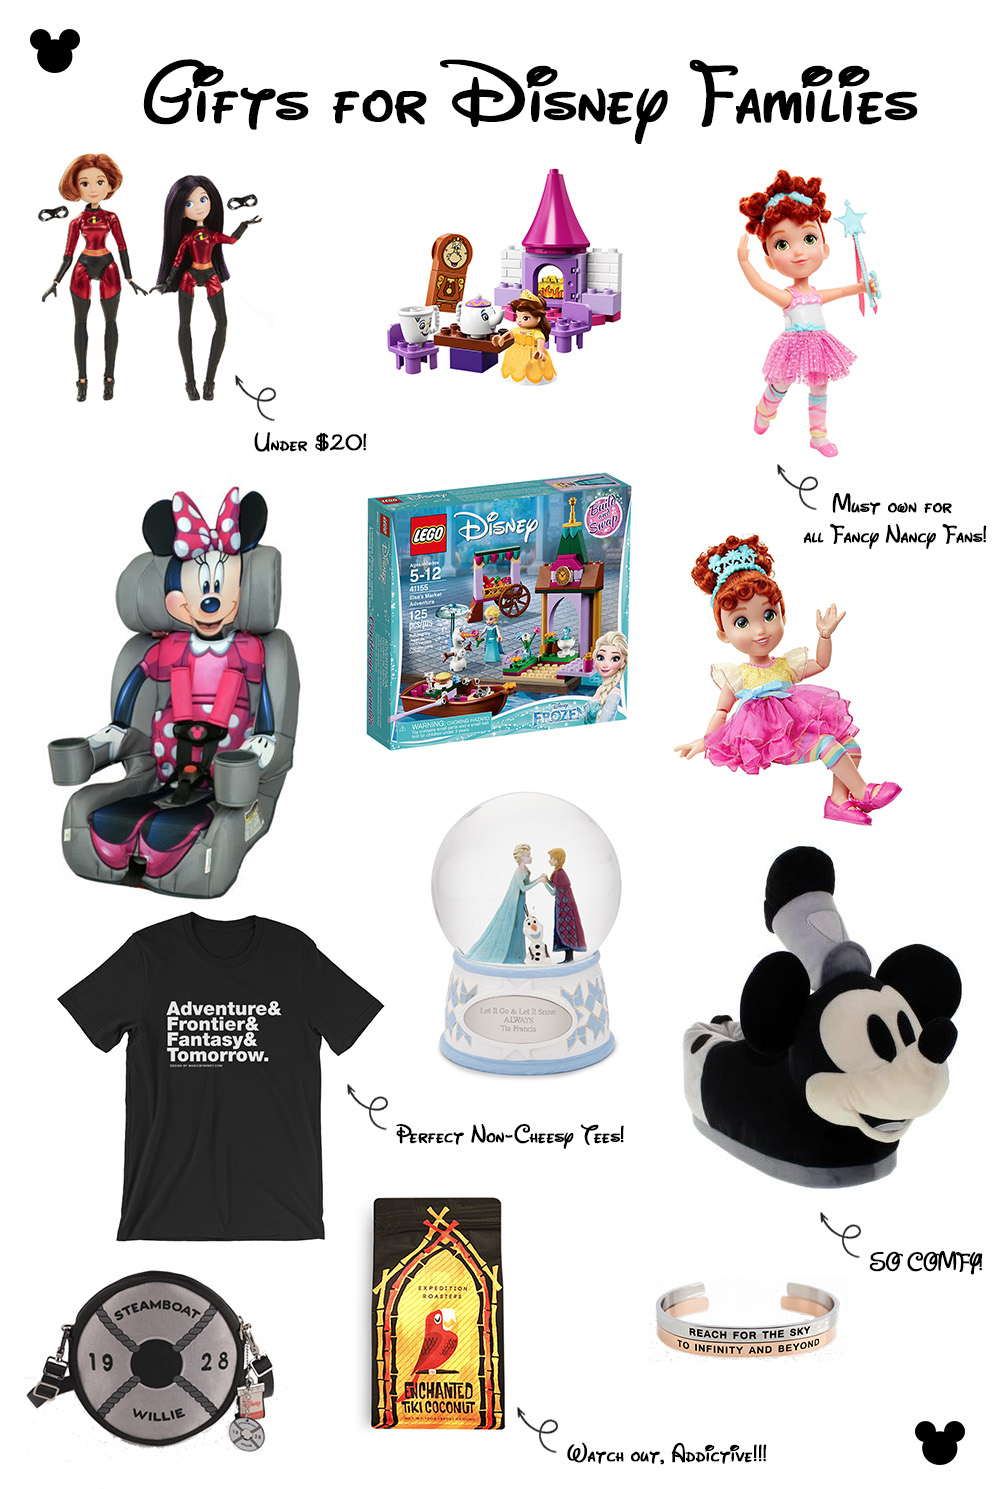 Looking for the perfect disney gifts for adults and kids? This Disney Gift Guide will help you find the ideal present for every member of your Disney Family!